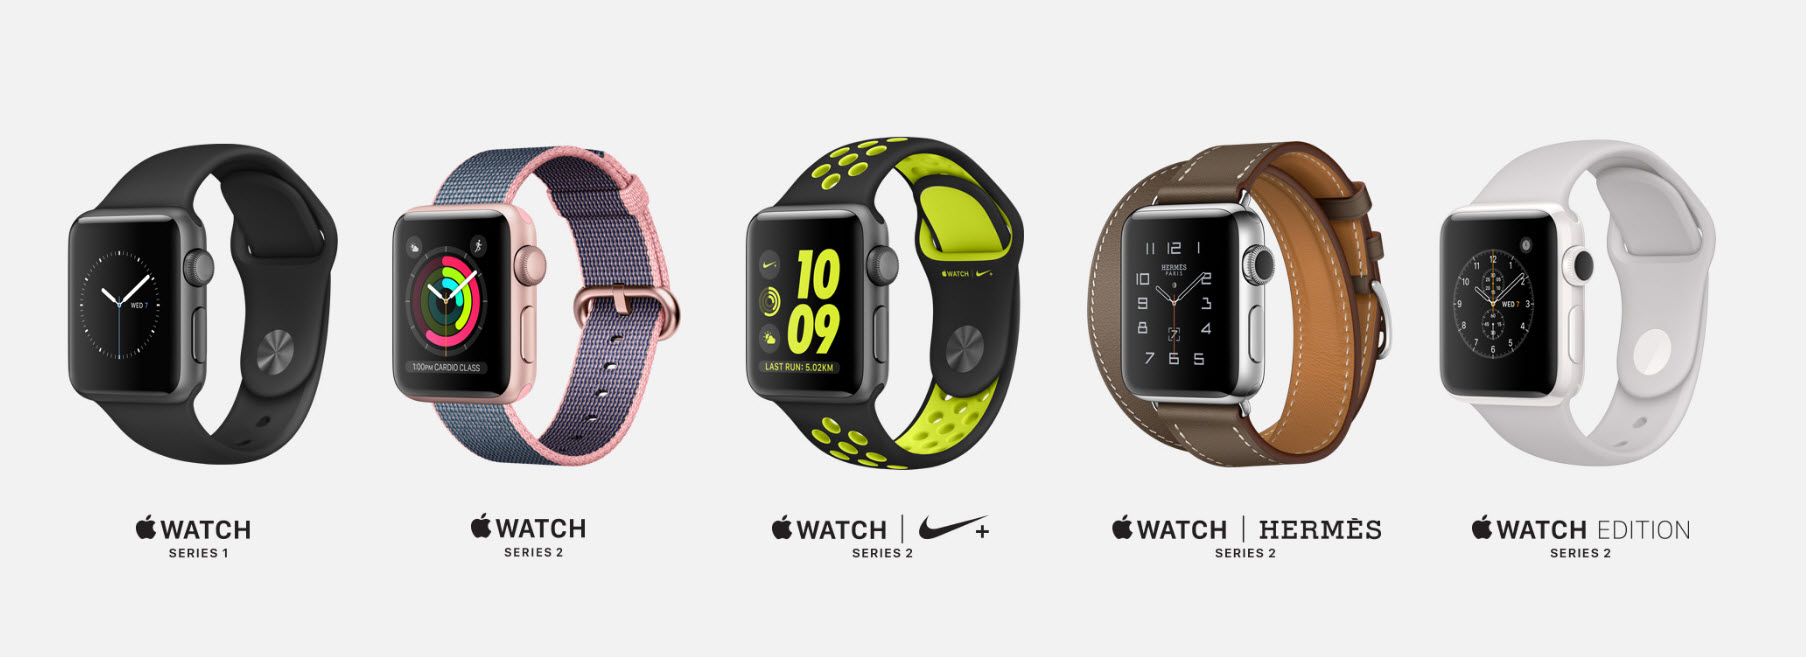 apple-s2-watch-edition-review-various-models